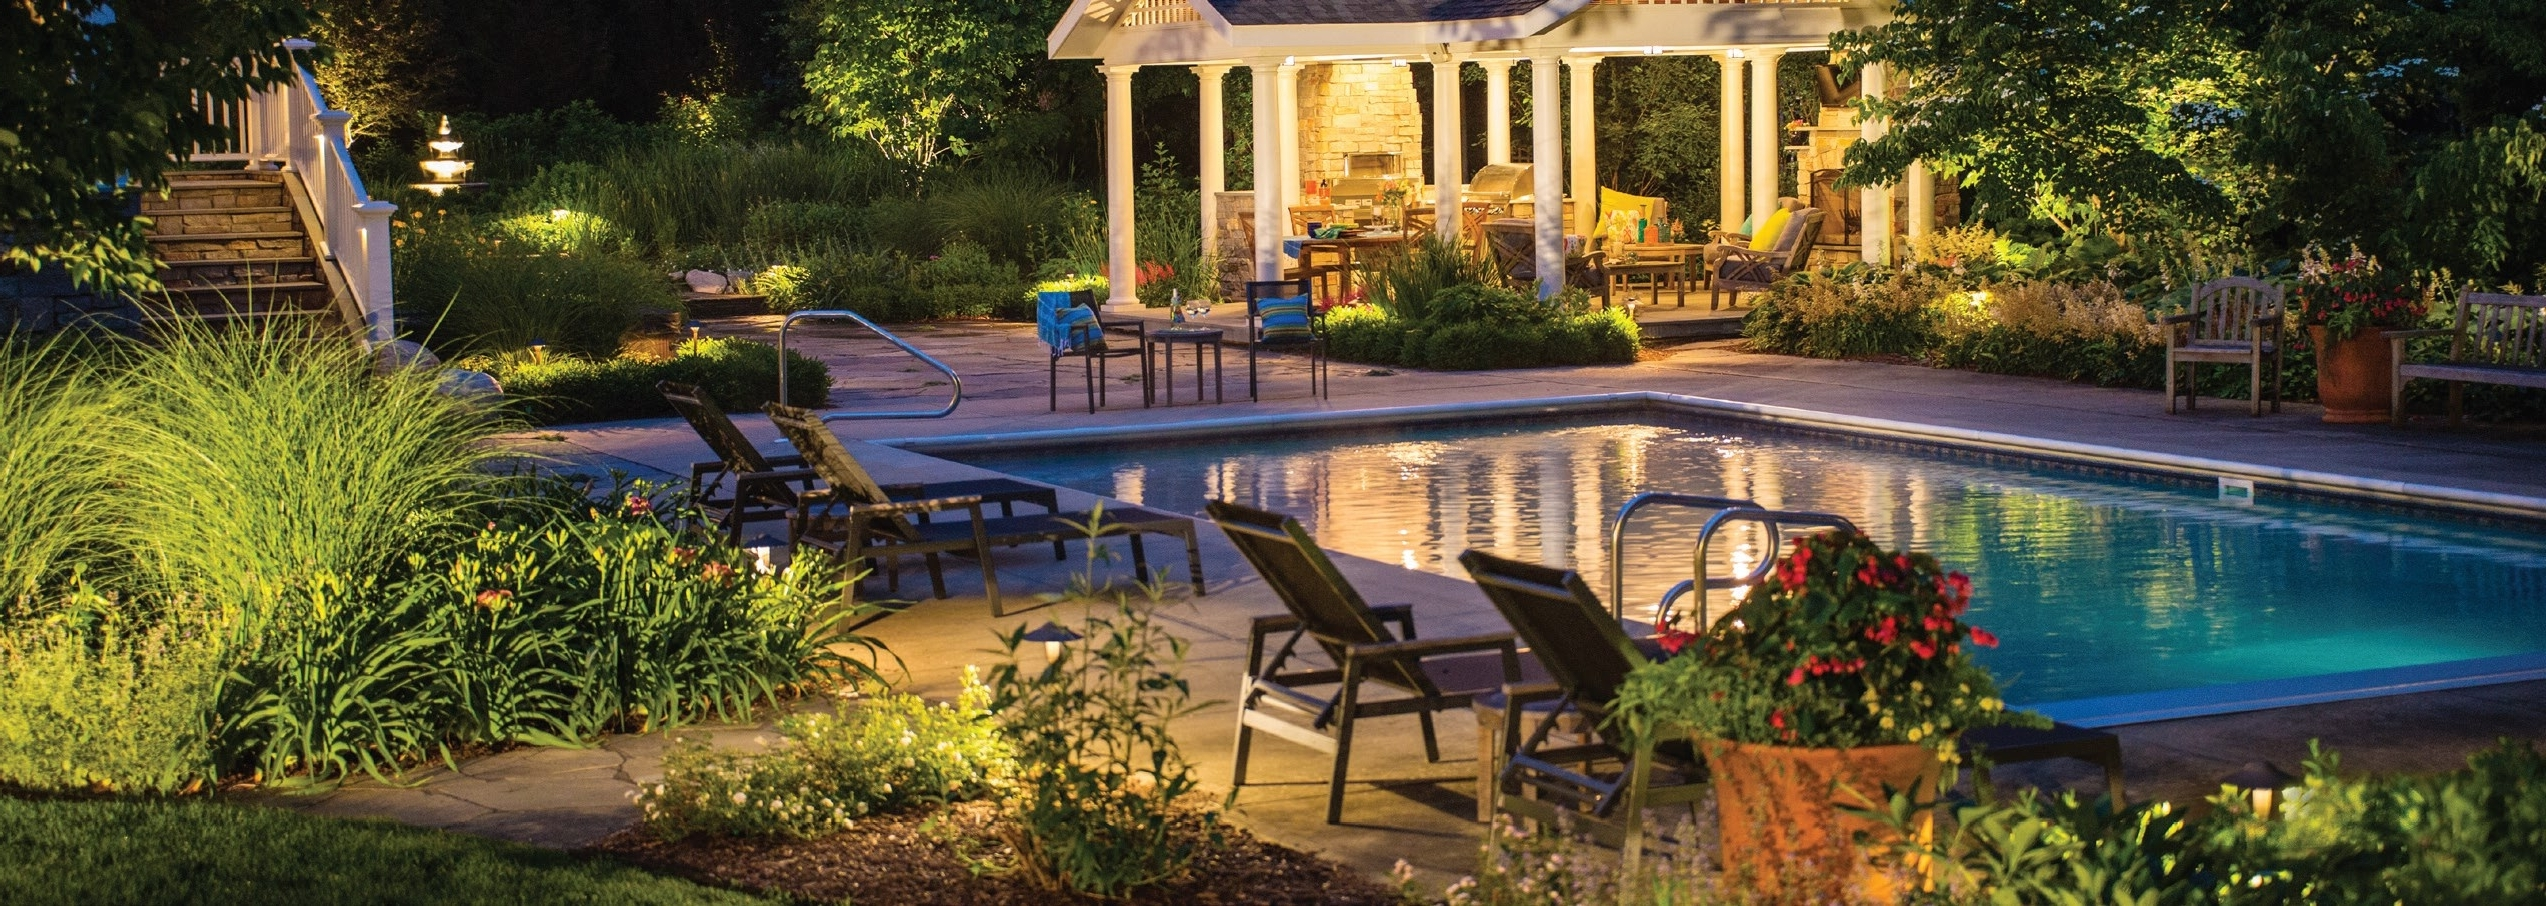 The Many Opportunities Of Low Voltage Landscape Lighting – Turf Throughout Well Known Let Outdoor Kichler Lighting (View 15 of 20)